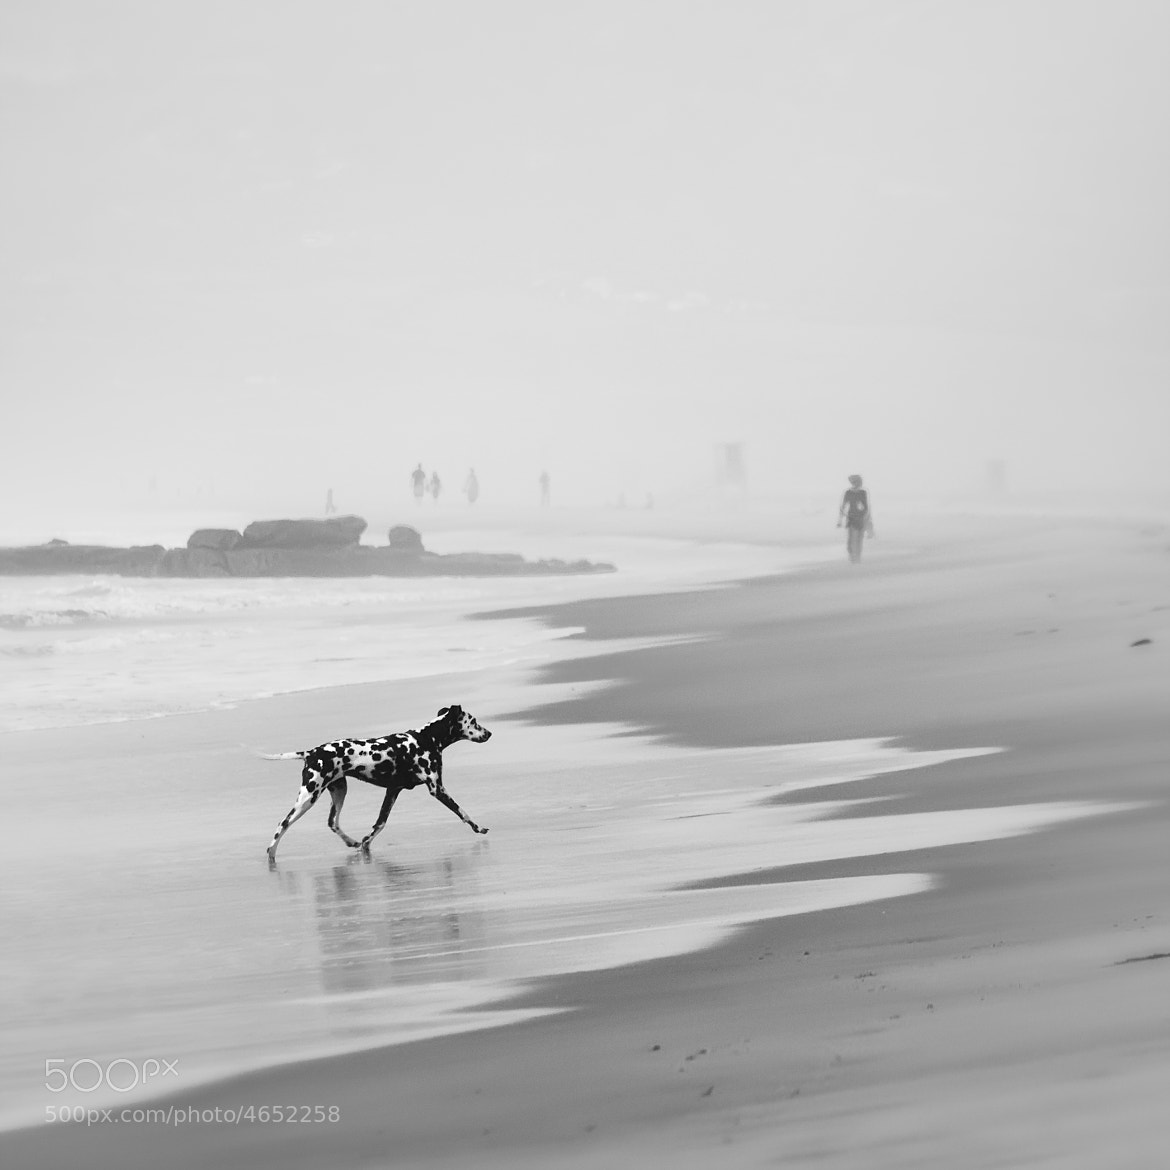 Photograph Looking for my 100 friends by stefan schmidt on 500px